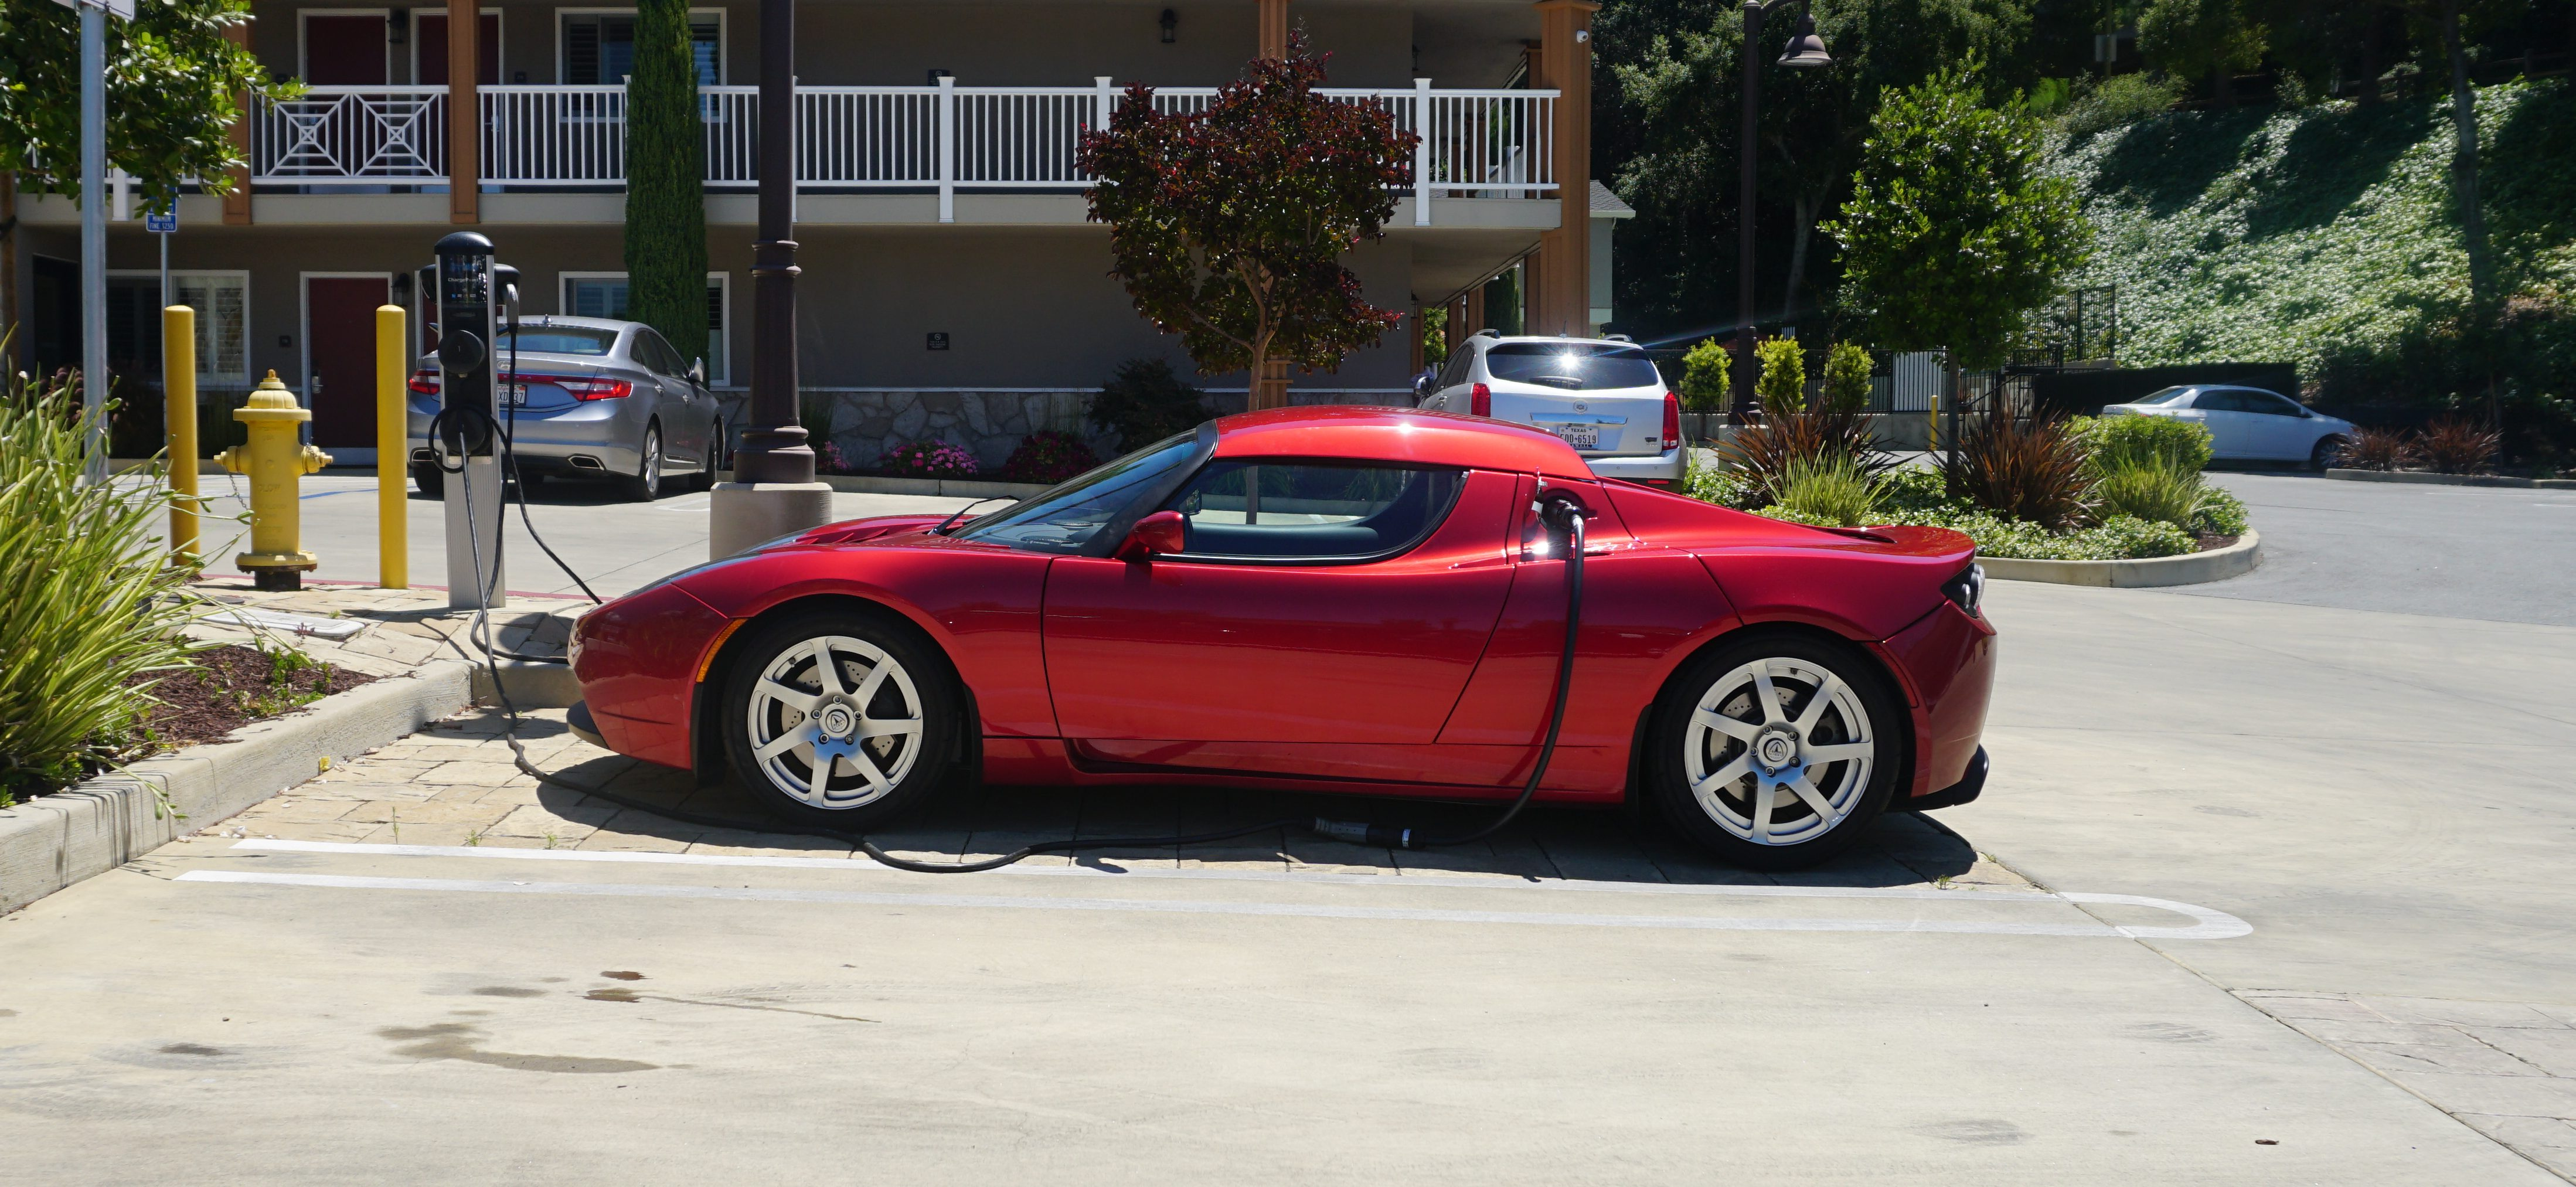 Tesla Roadster 3 0 The Electric Car That Sparked A Revolution